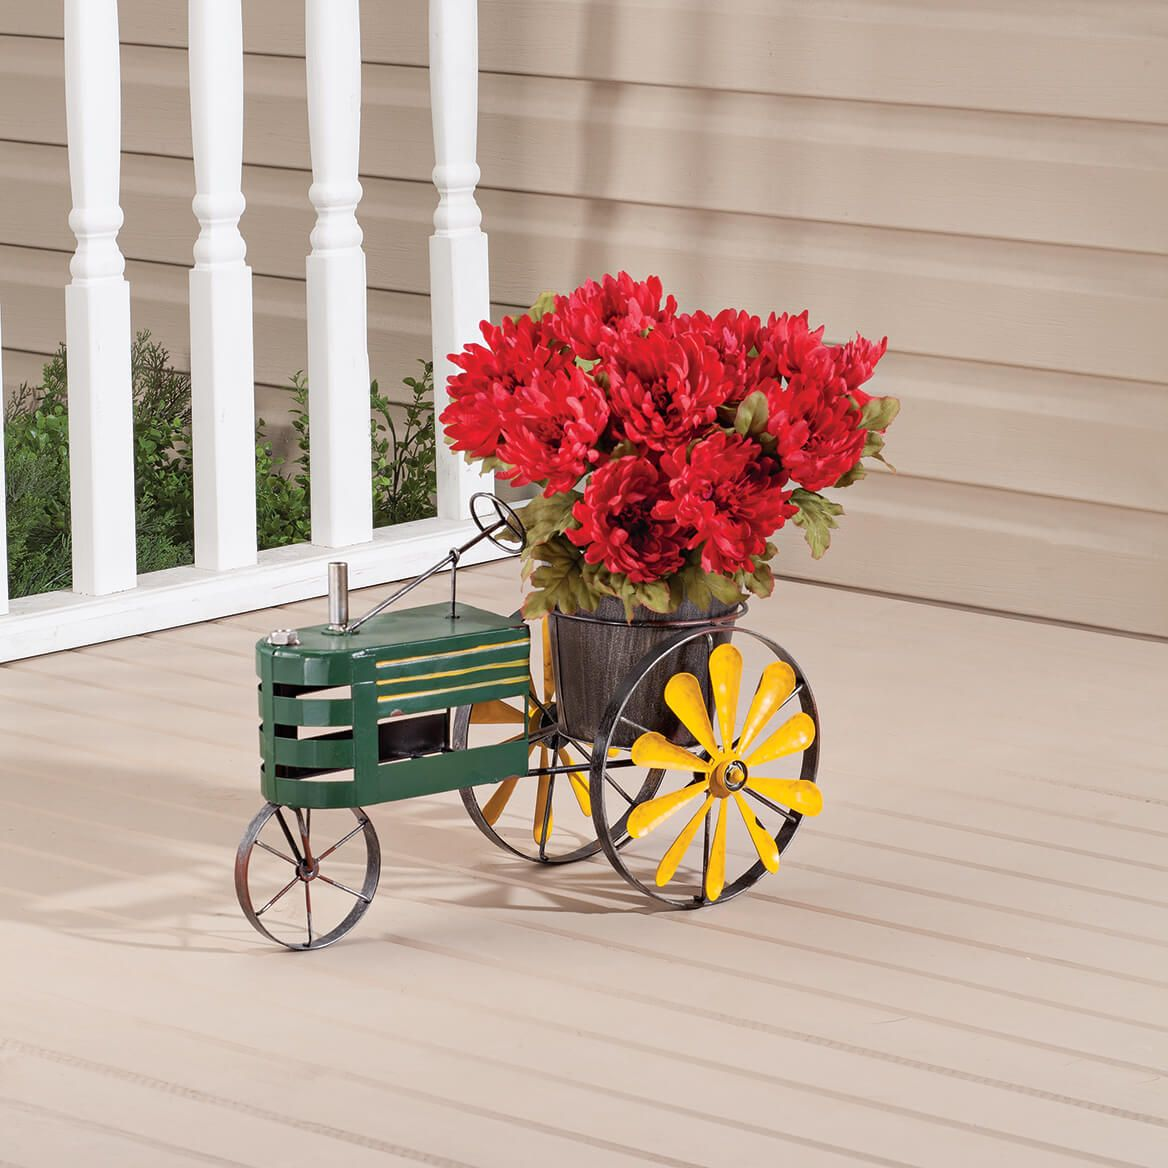 Metal Tractor Windmill Planter by Fox River Creations™-362539